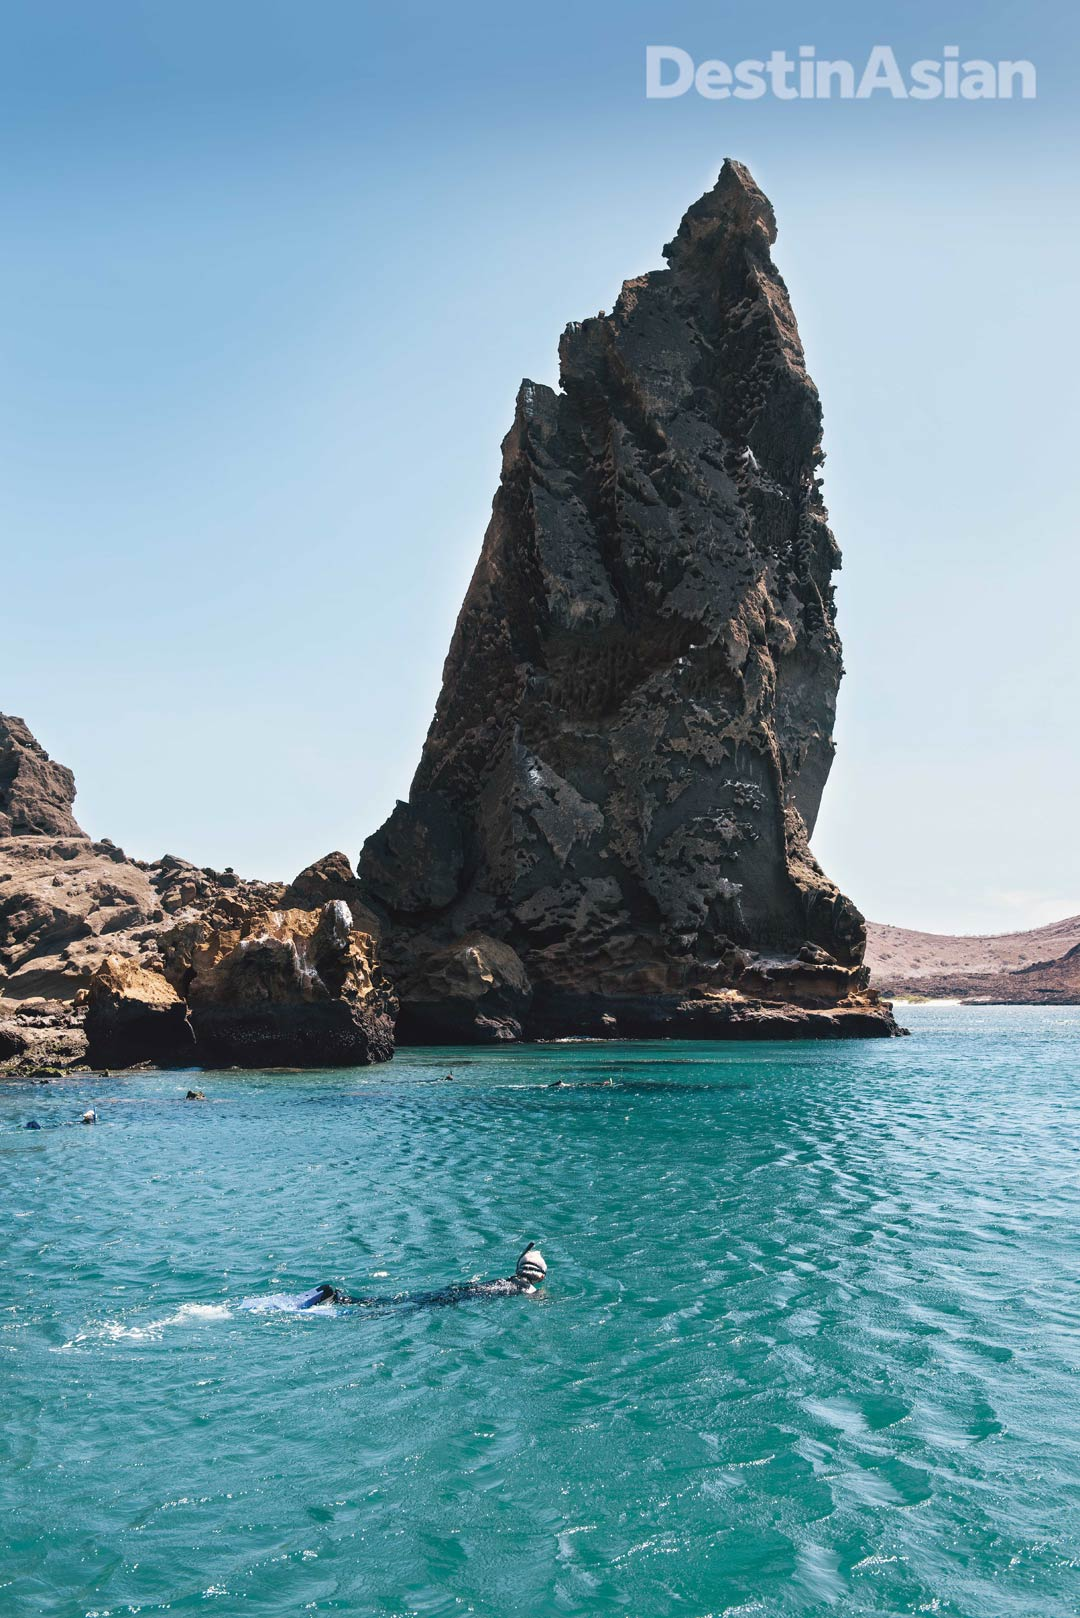 Snorkelers braving the cold waters off Bartolomé Island's iconic Pinnacle Rock.